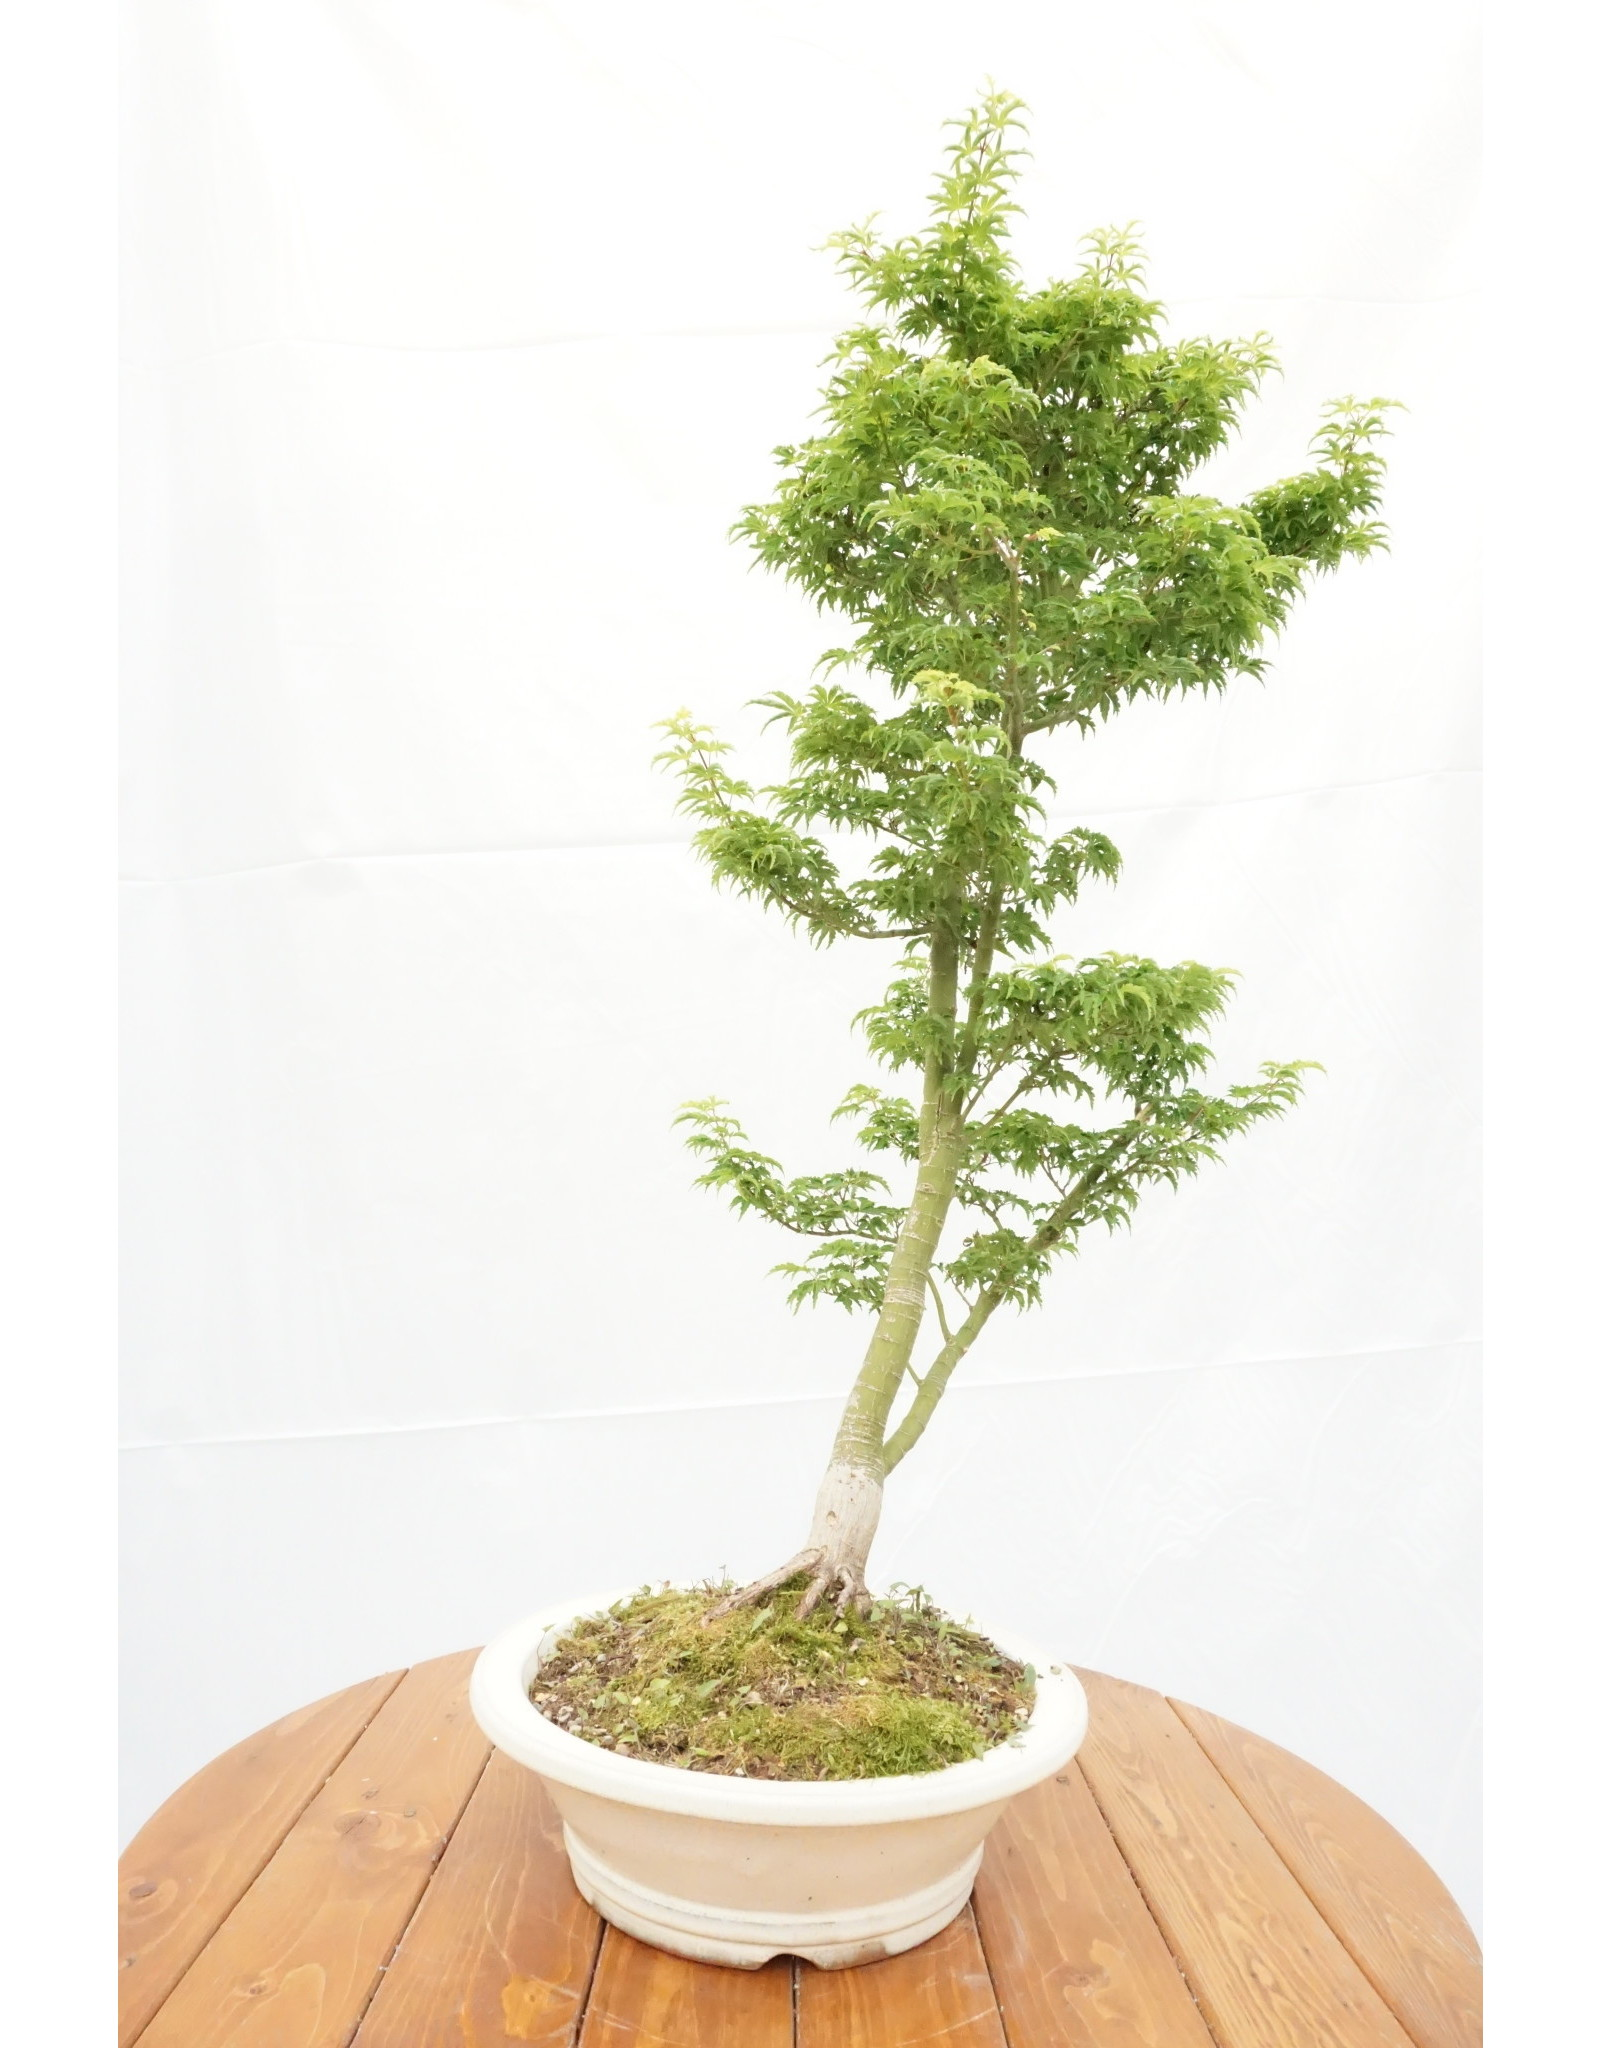 Bonsai, Japanese Maple - Acer Palmatum 'Shishigashira' 12 yr